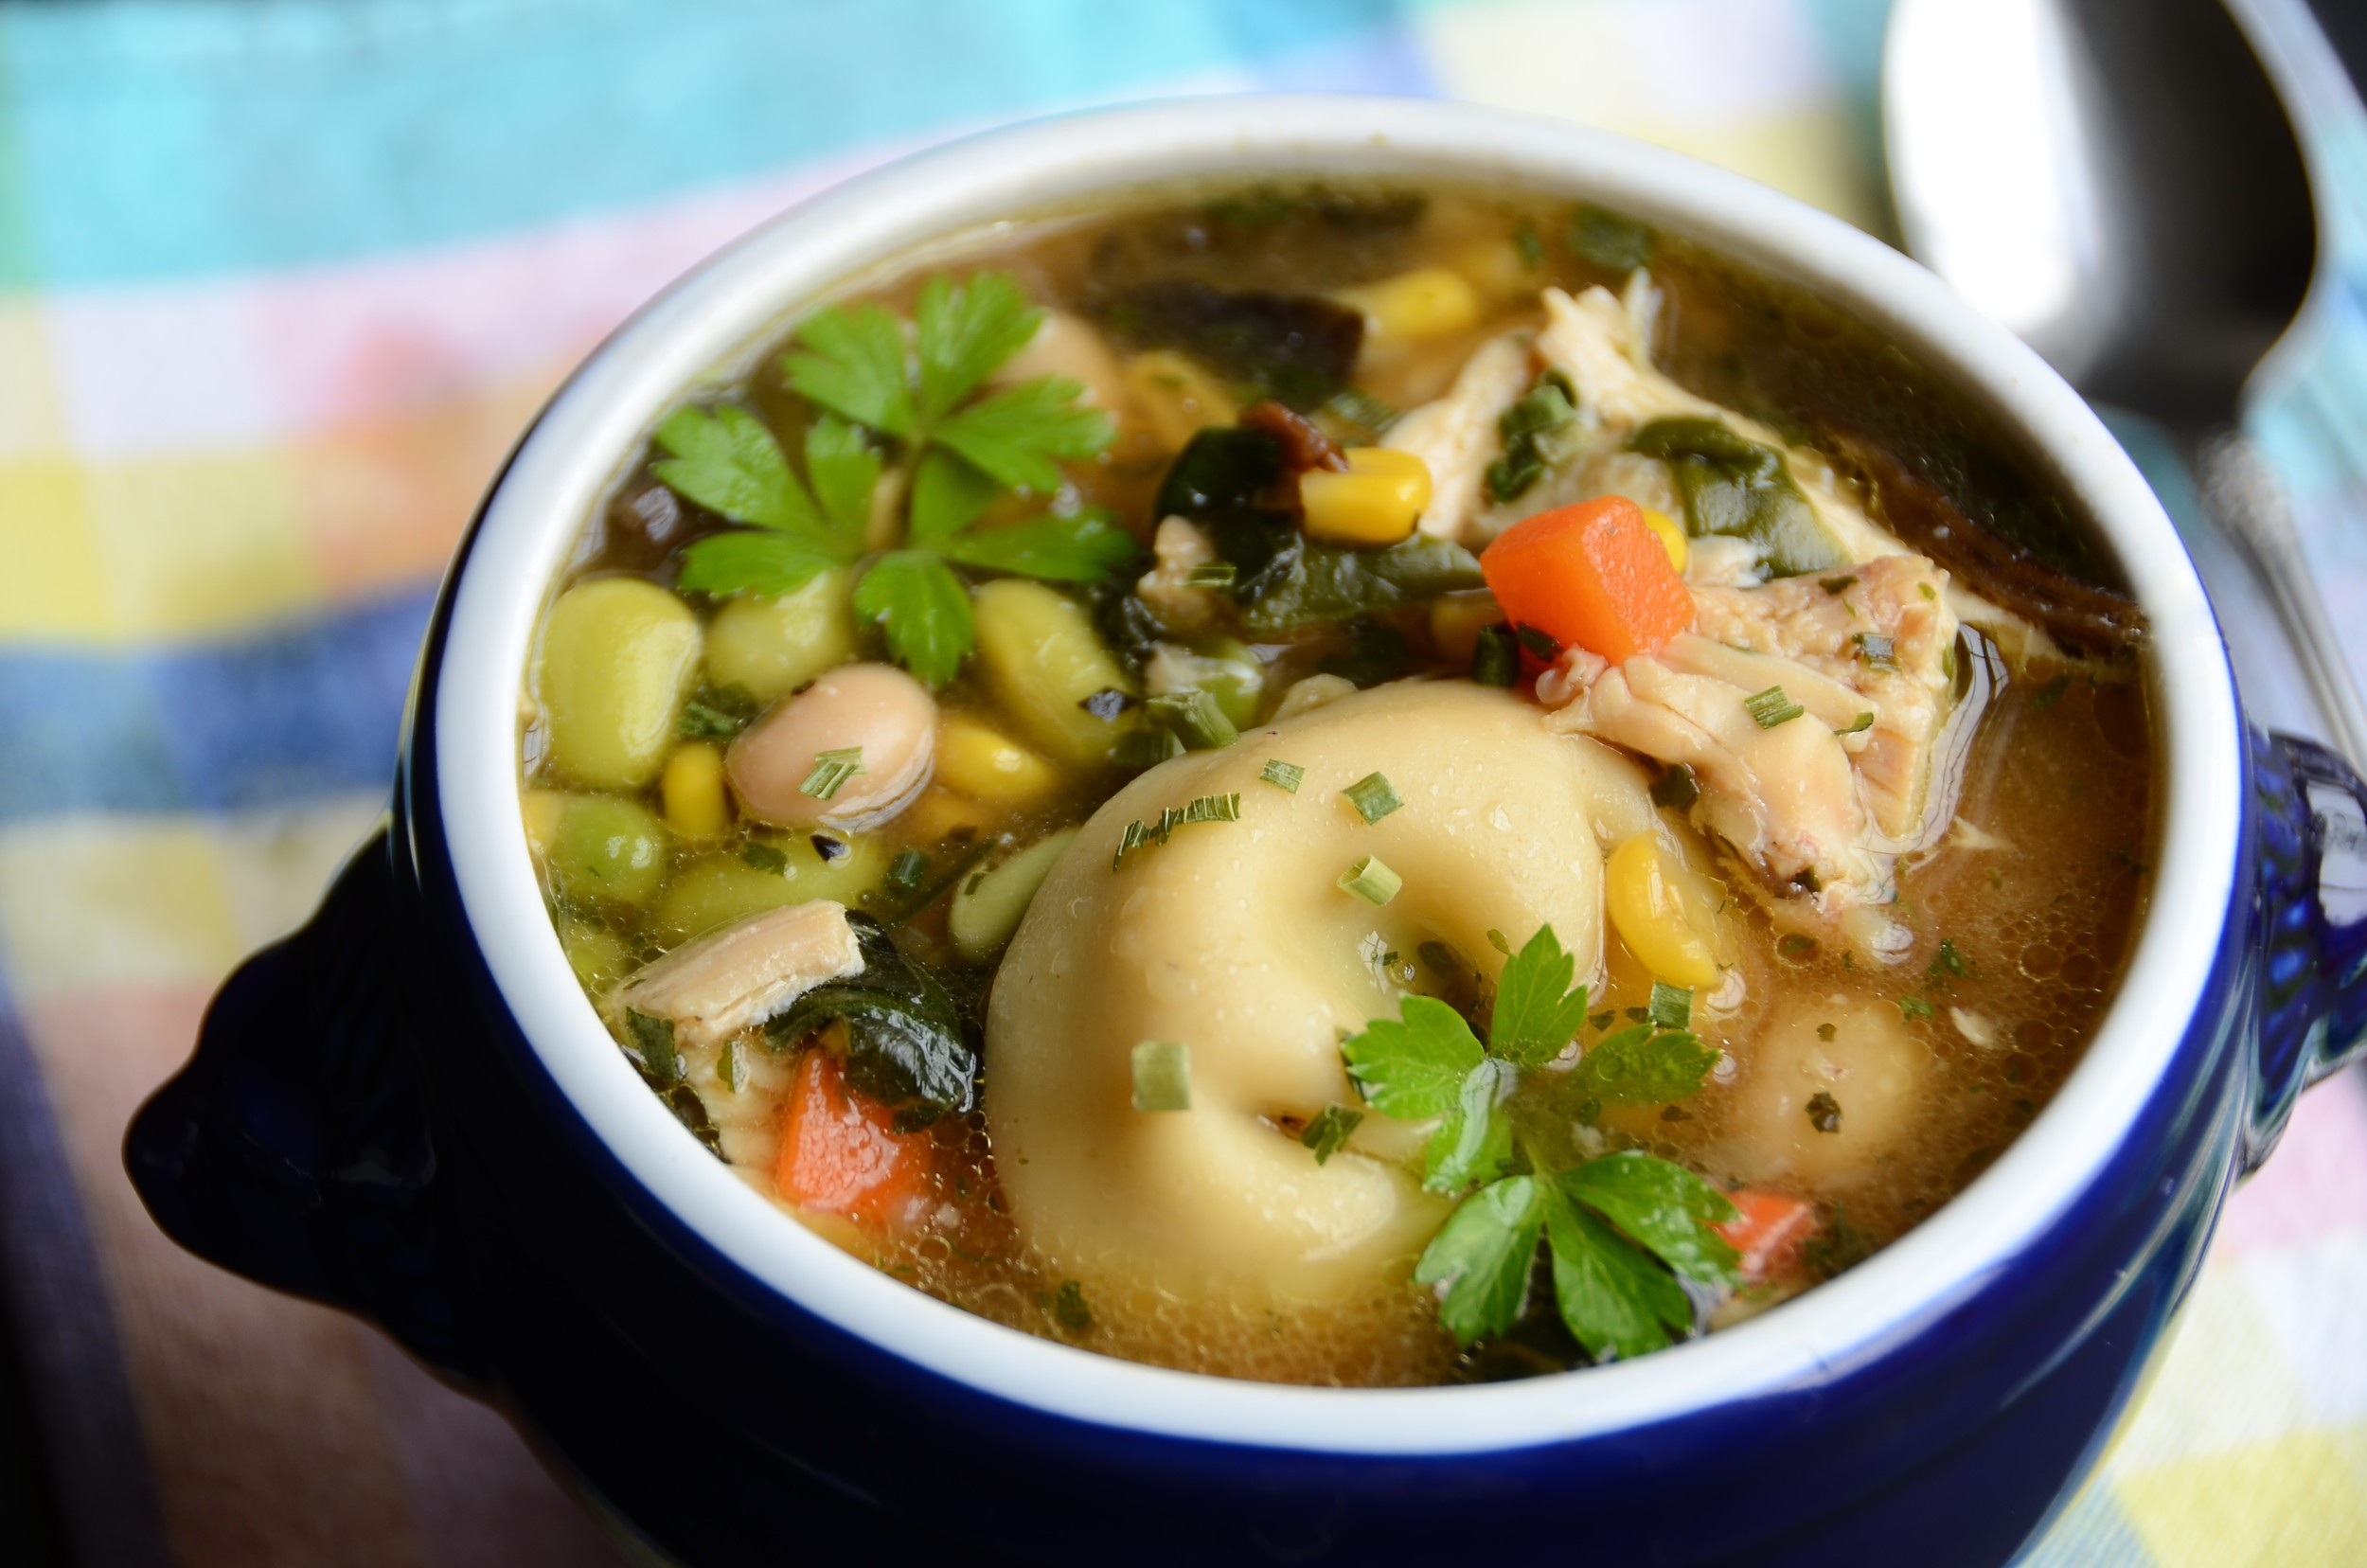 How to Make Hearty Soup without a Recipe - ButterYum